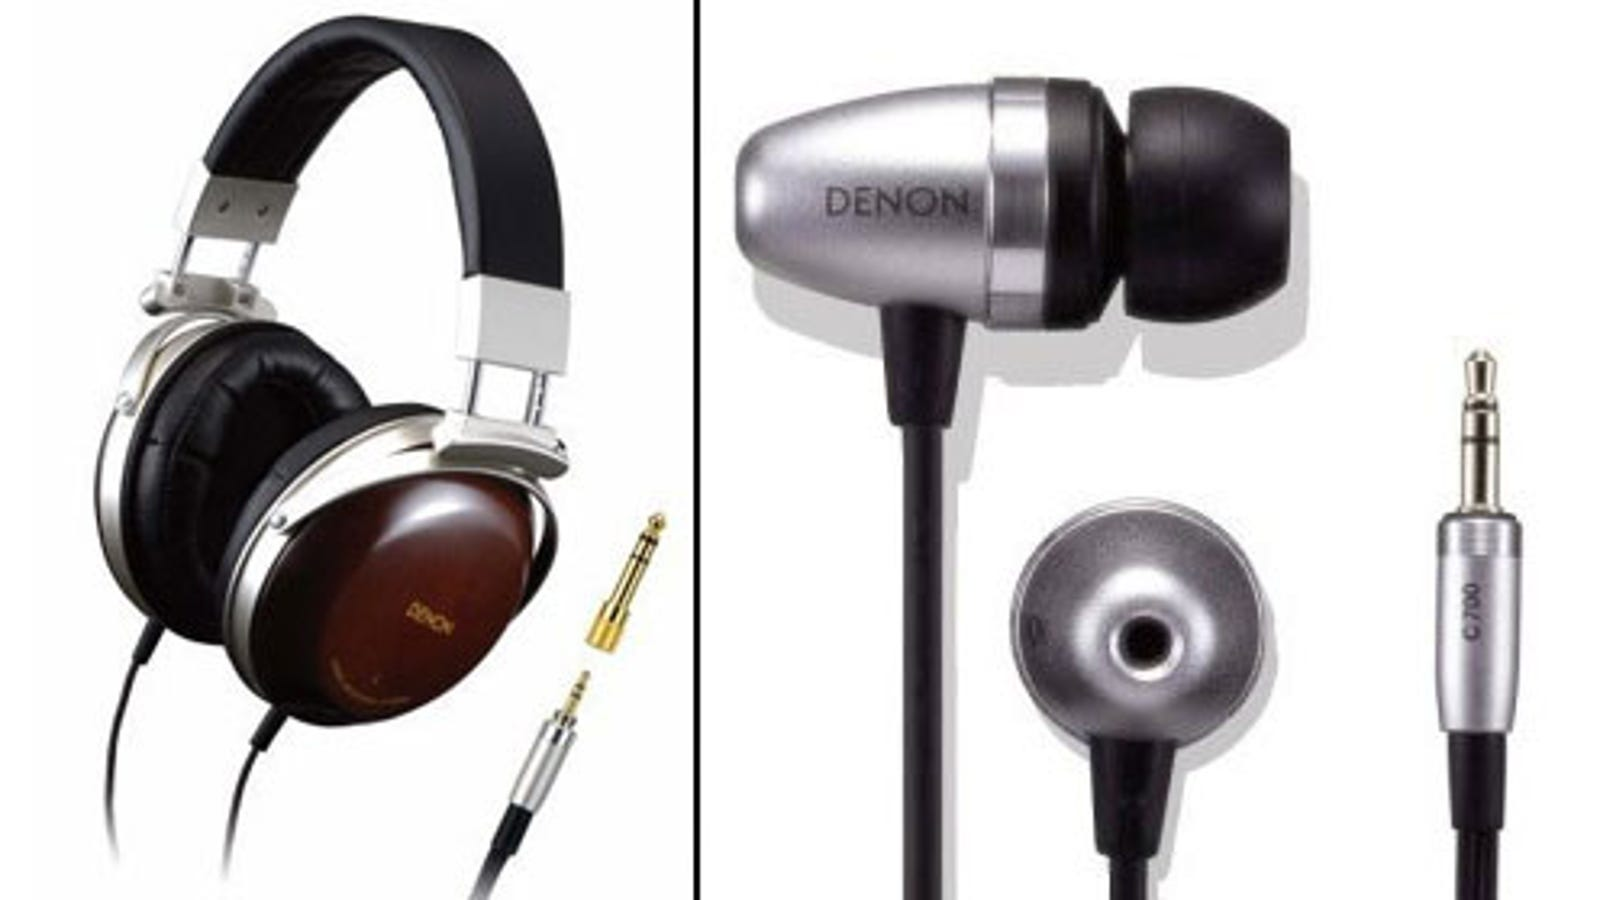 wireless headphones bluetooth computer - Denon Rolls Out Variety of Headphone and Earphone Choices